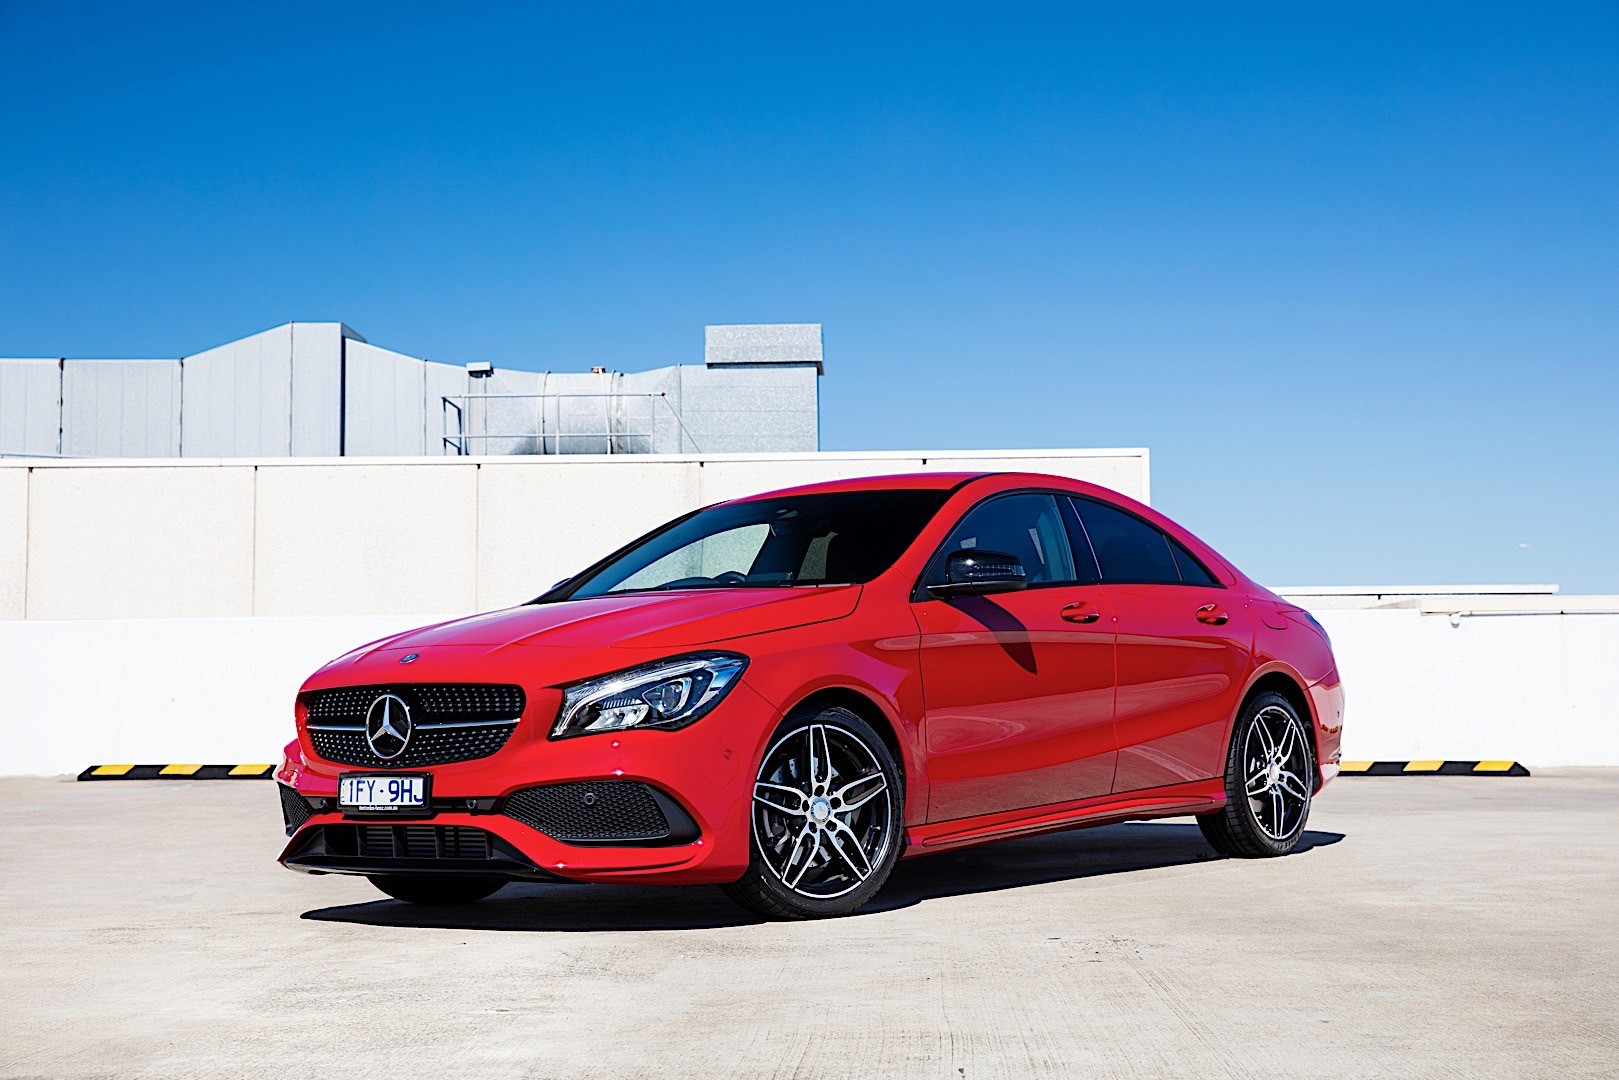 Mercedes benz cla c117 specs 2016 2017 2018 for Mercedes benz cla 250 specs